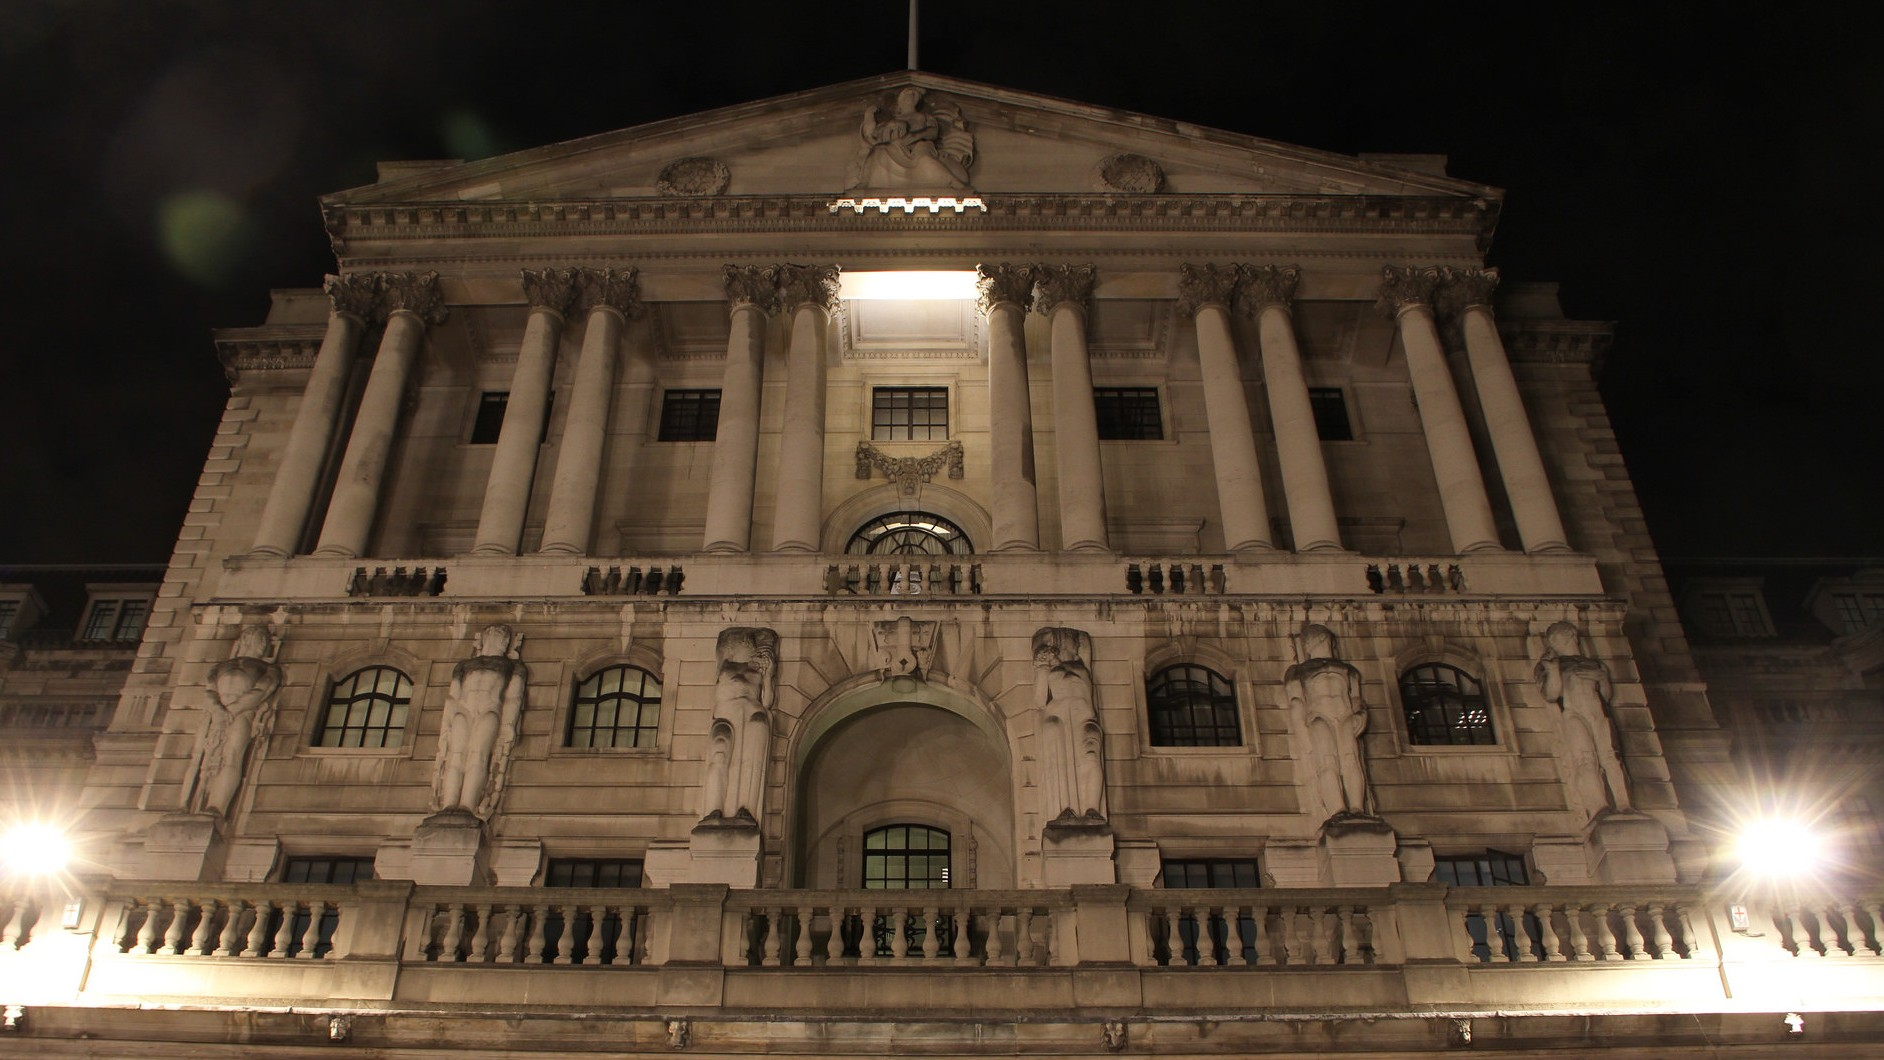 The Bank of England Is Impressed With Bitcoin's Block Chain